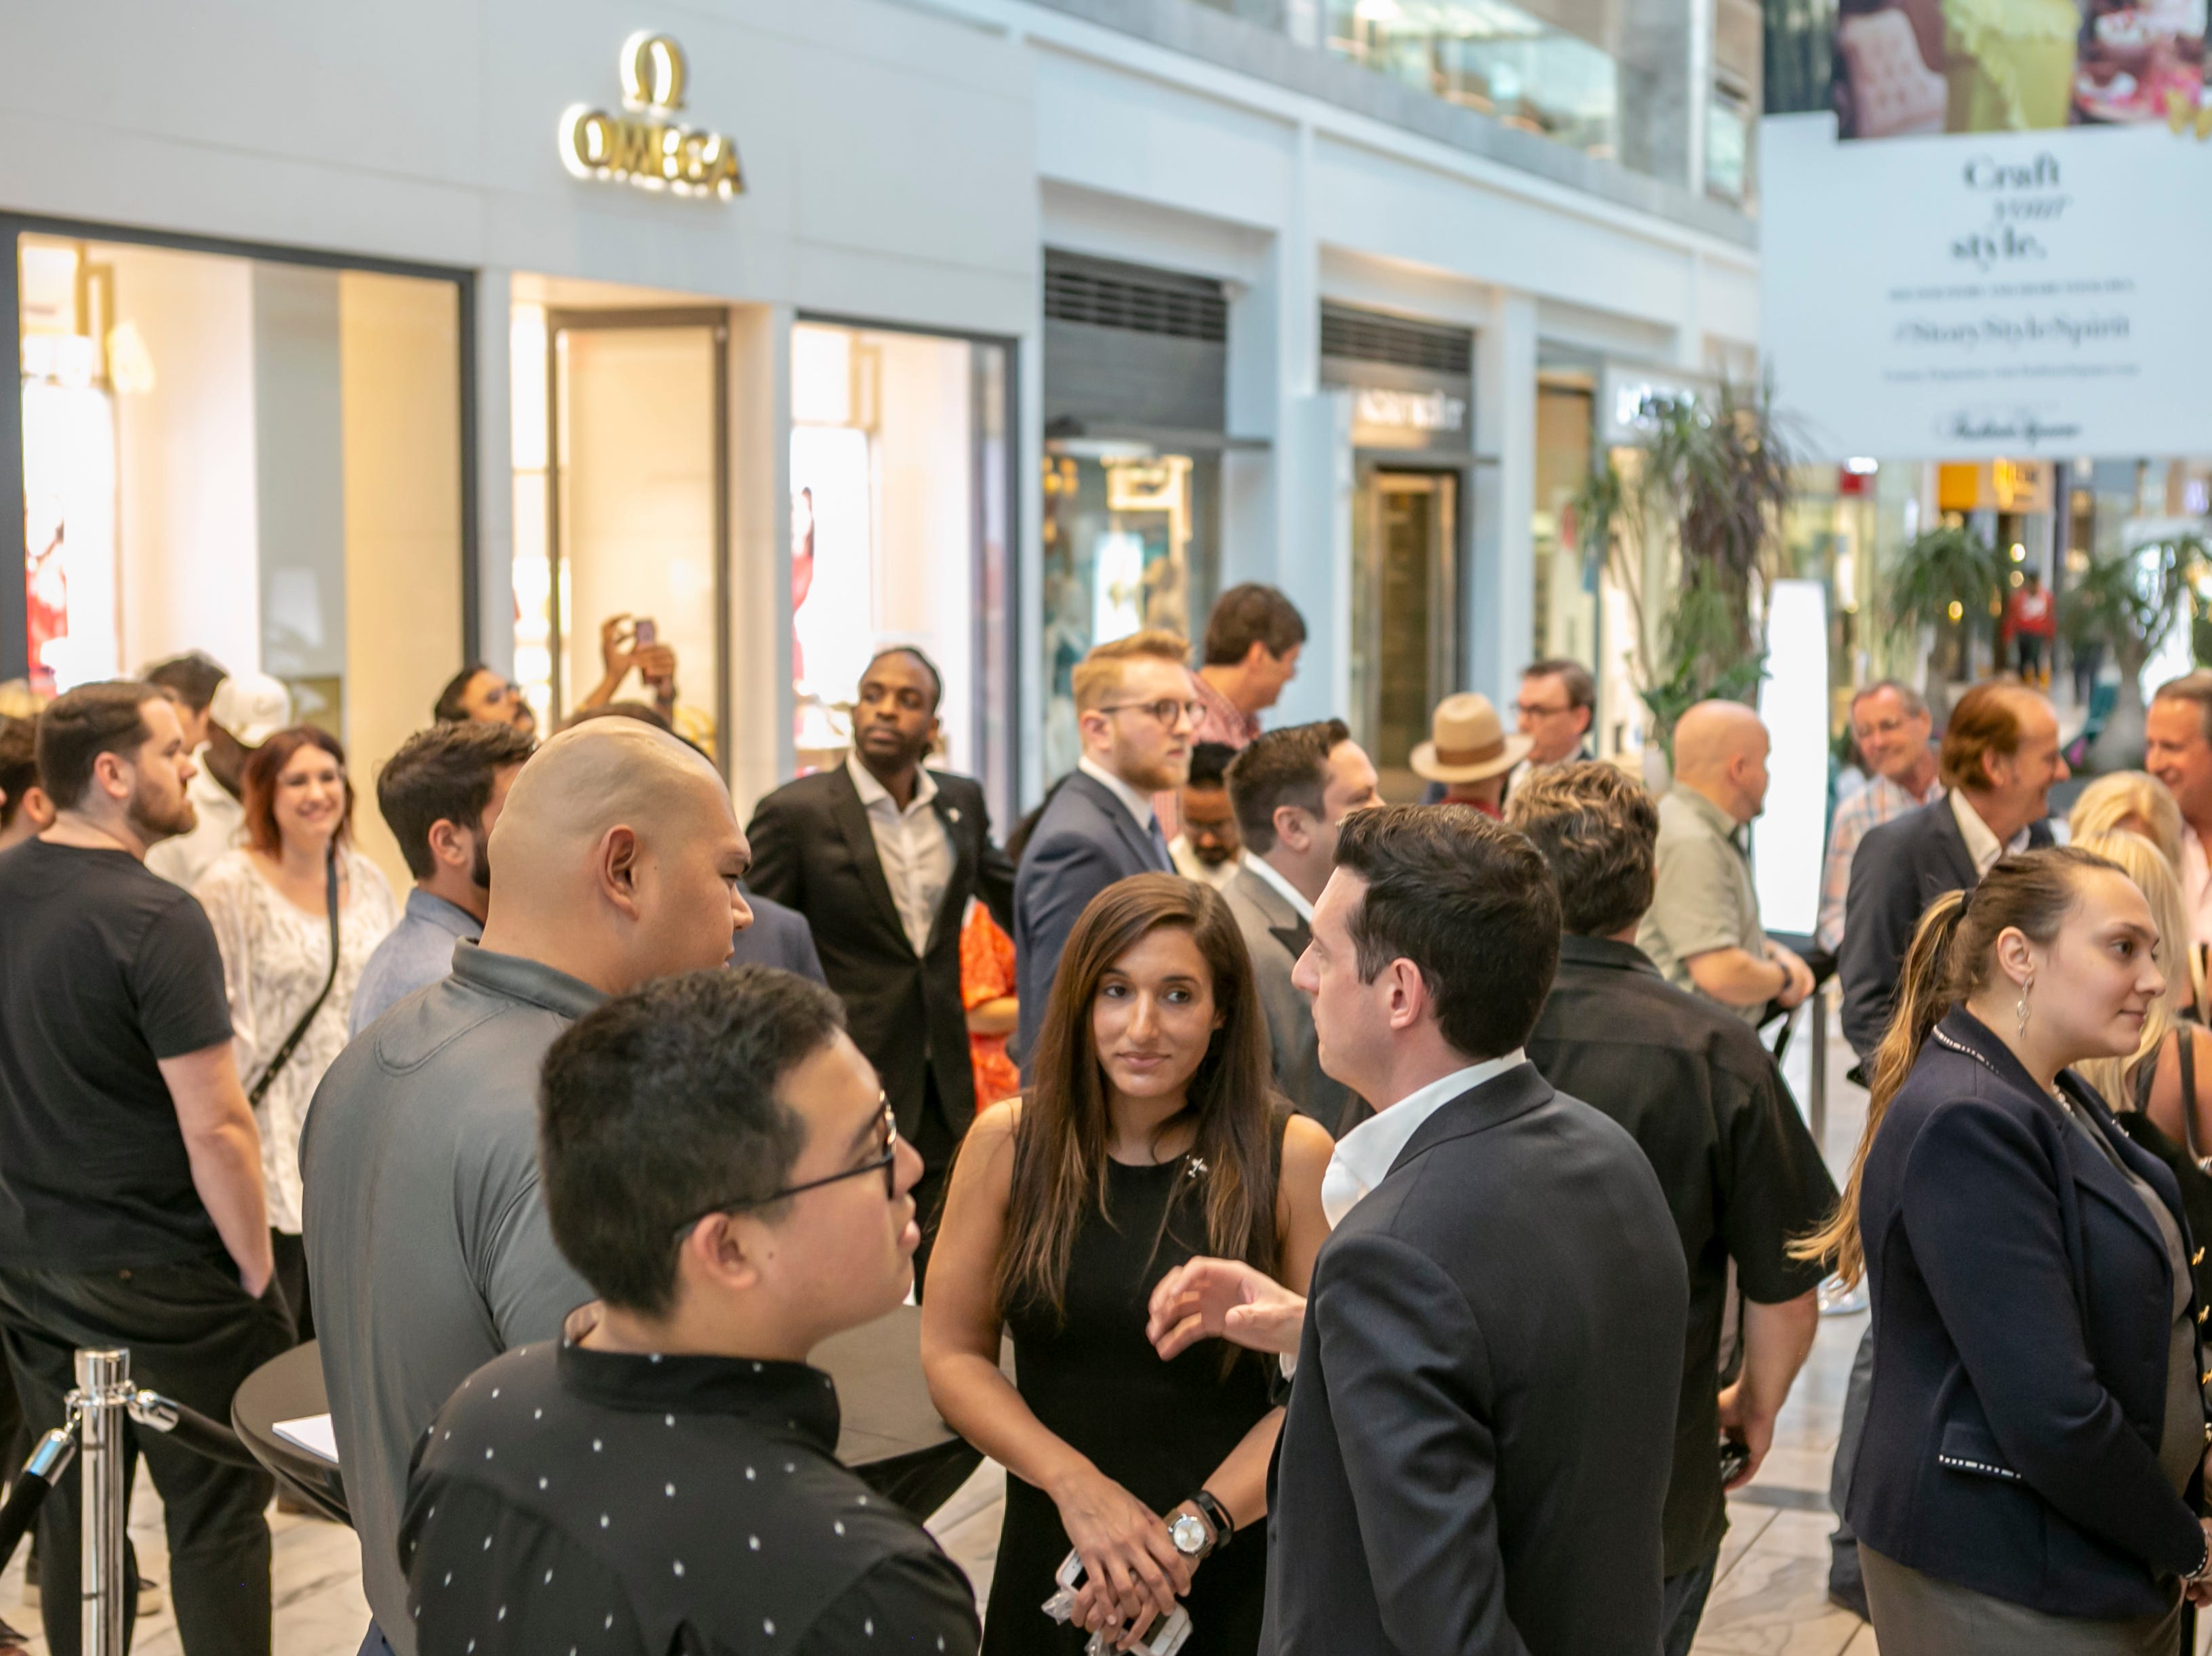 Guests arrive at IWC Schaffhausen's launch party for the Spitfire collection at the Scottsdale Fashion Square, Thursday, April 25, 2019.